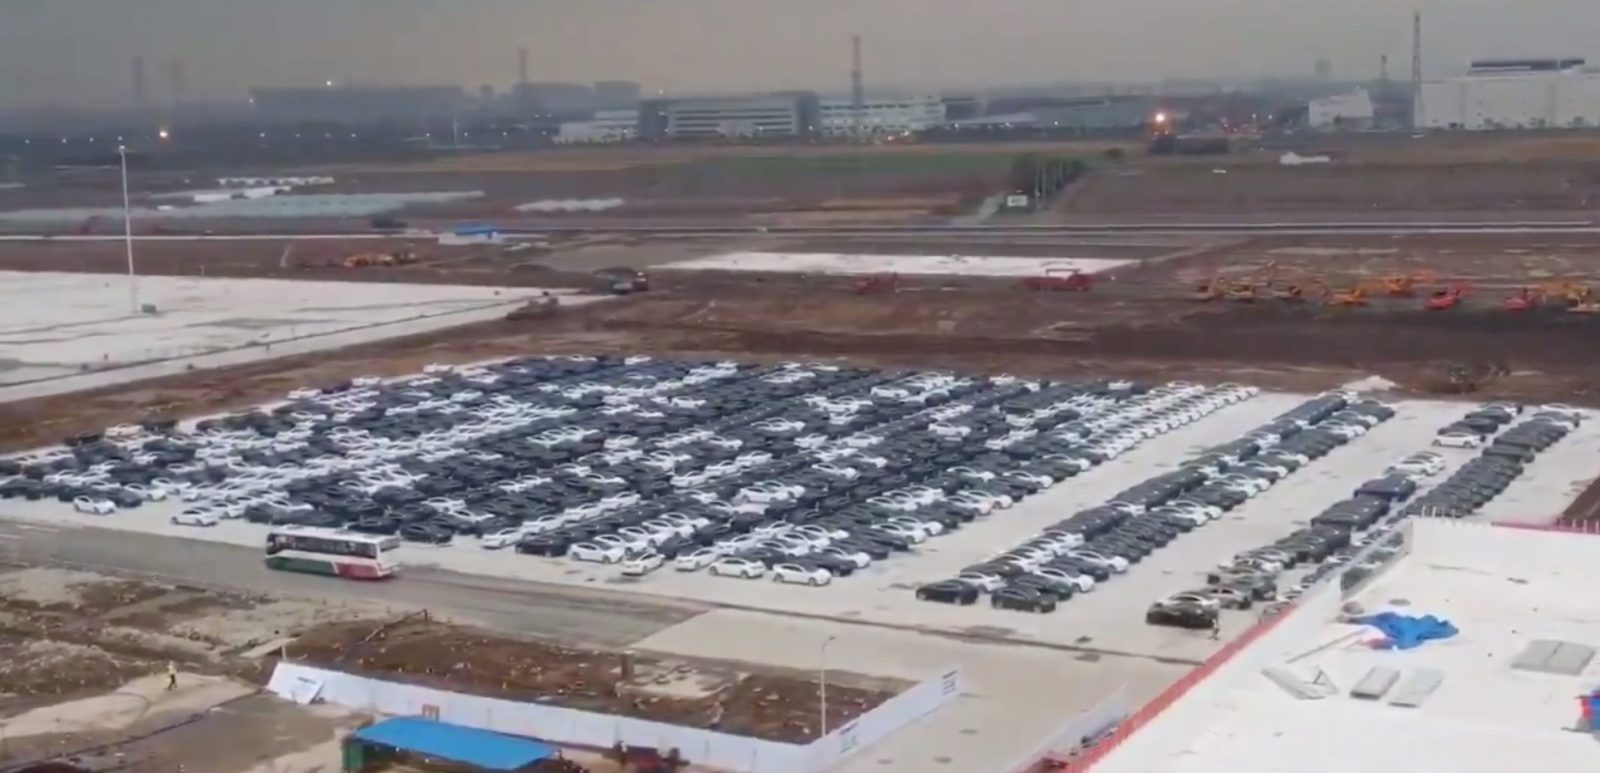 Tesla Model 3 cars are overflowing in Gigafactory 3 parking lot